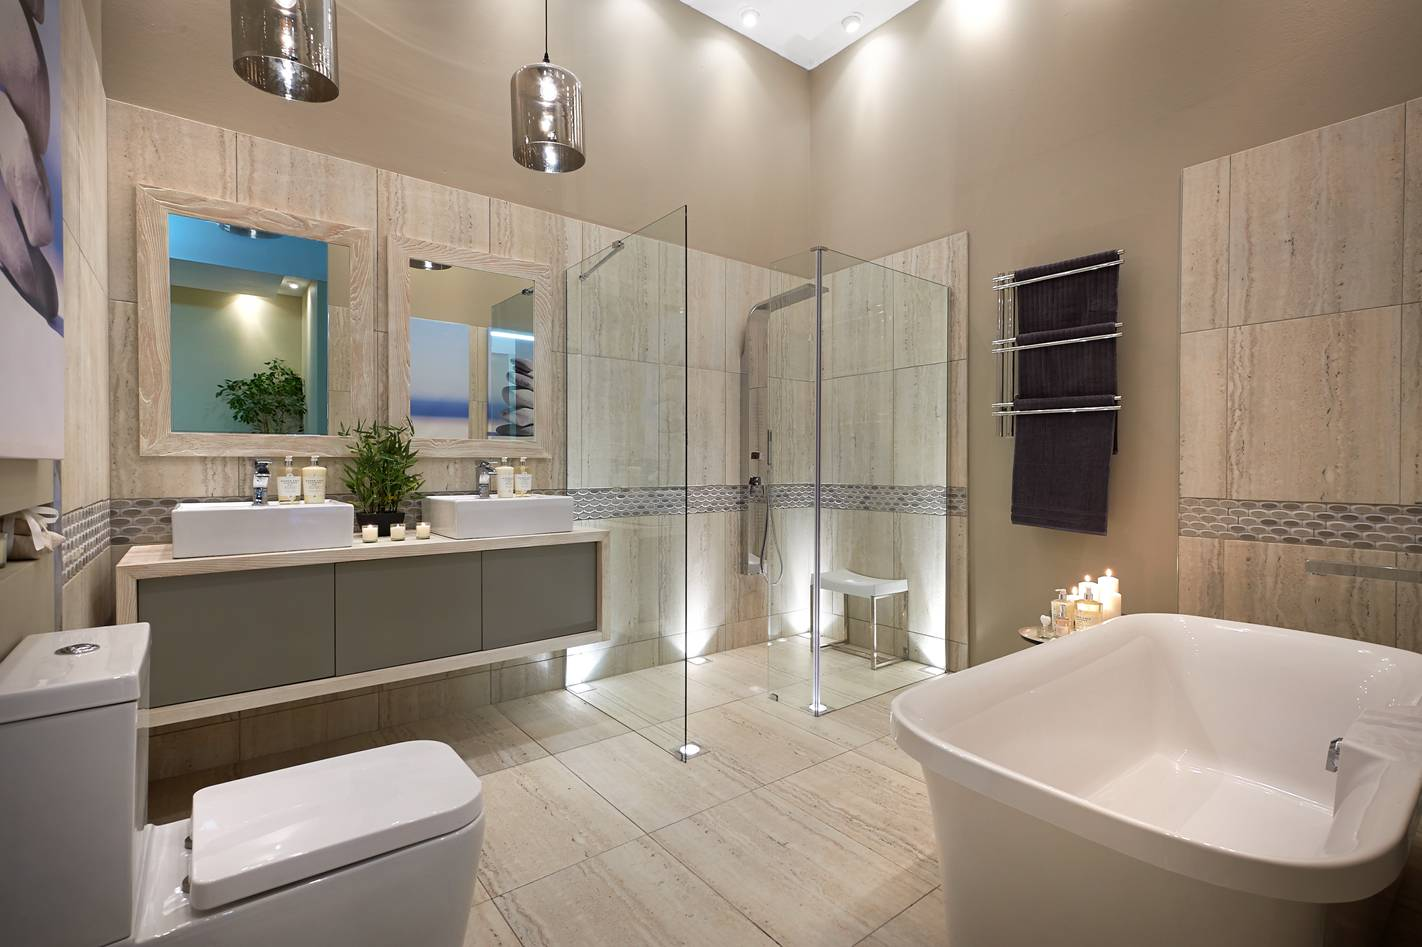 Top design tips for family bathrooms Bathrooms pictures